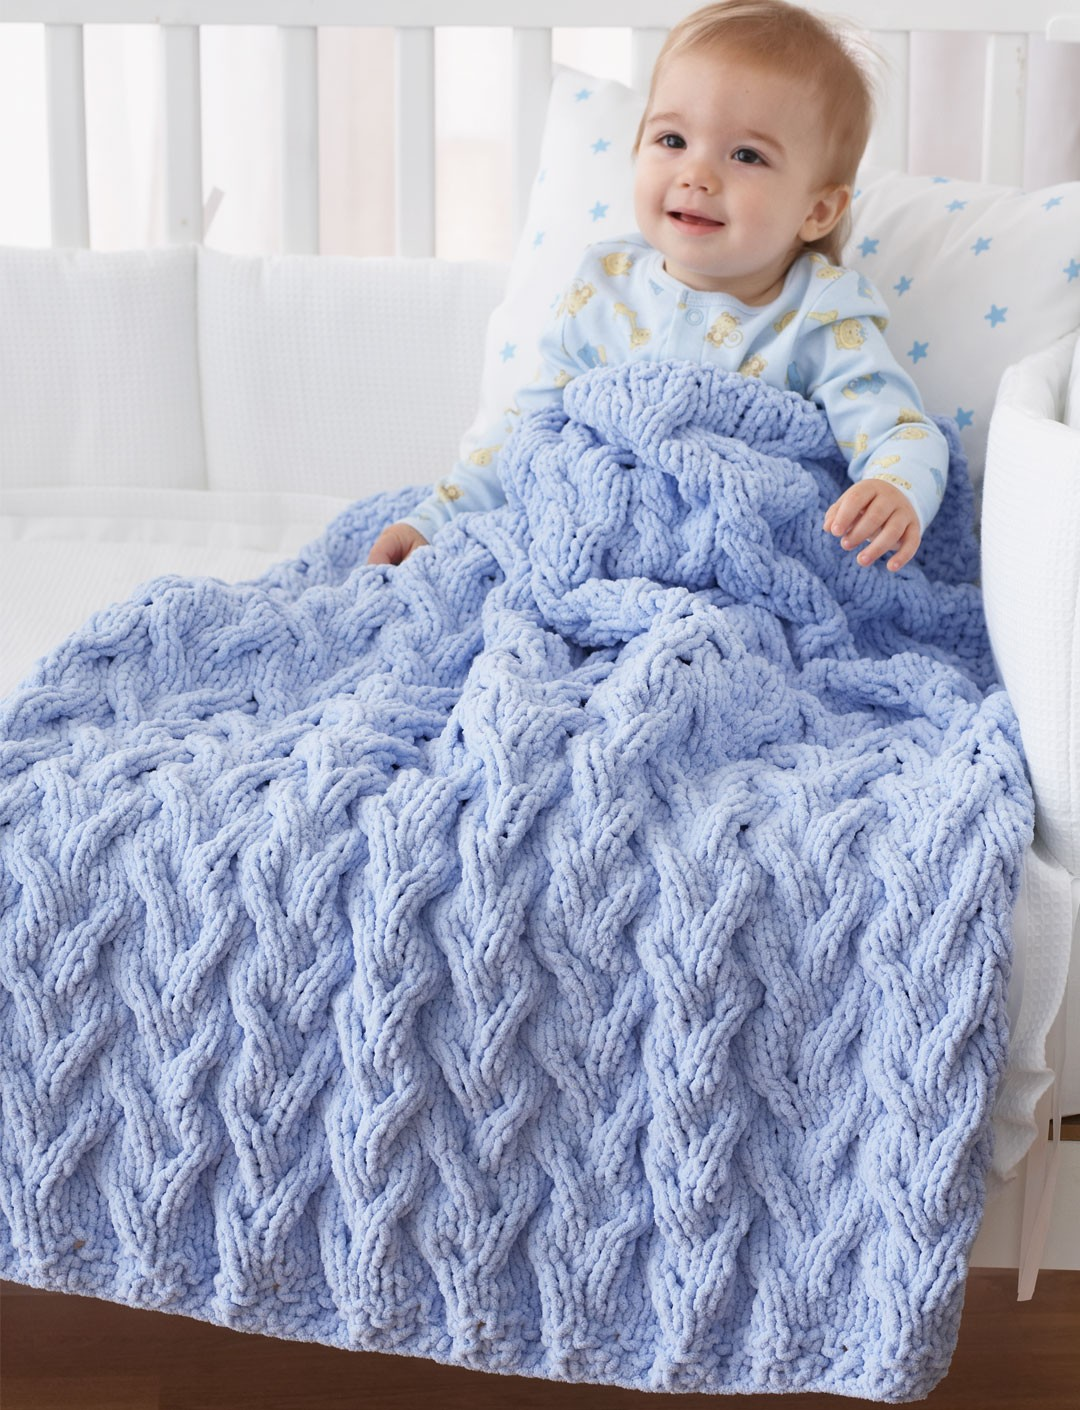 Crochet Patterns Bernat Blanket Yarn : bernat baby blanket patterns free Car Tuning